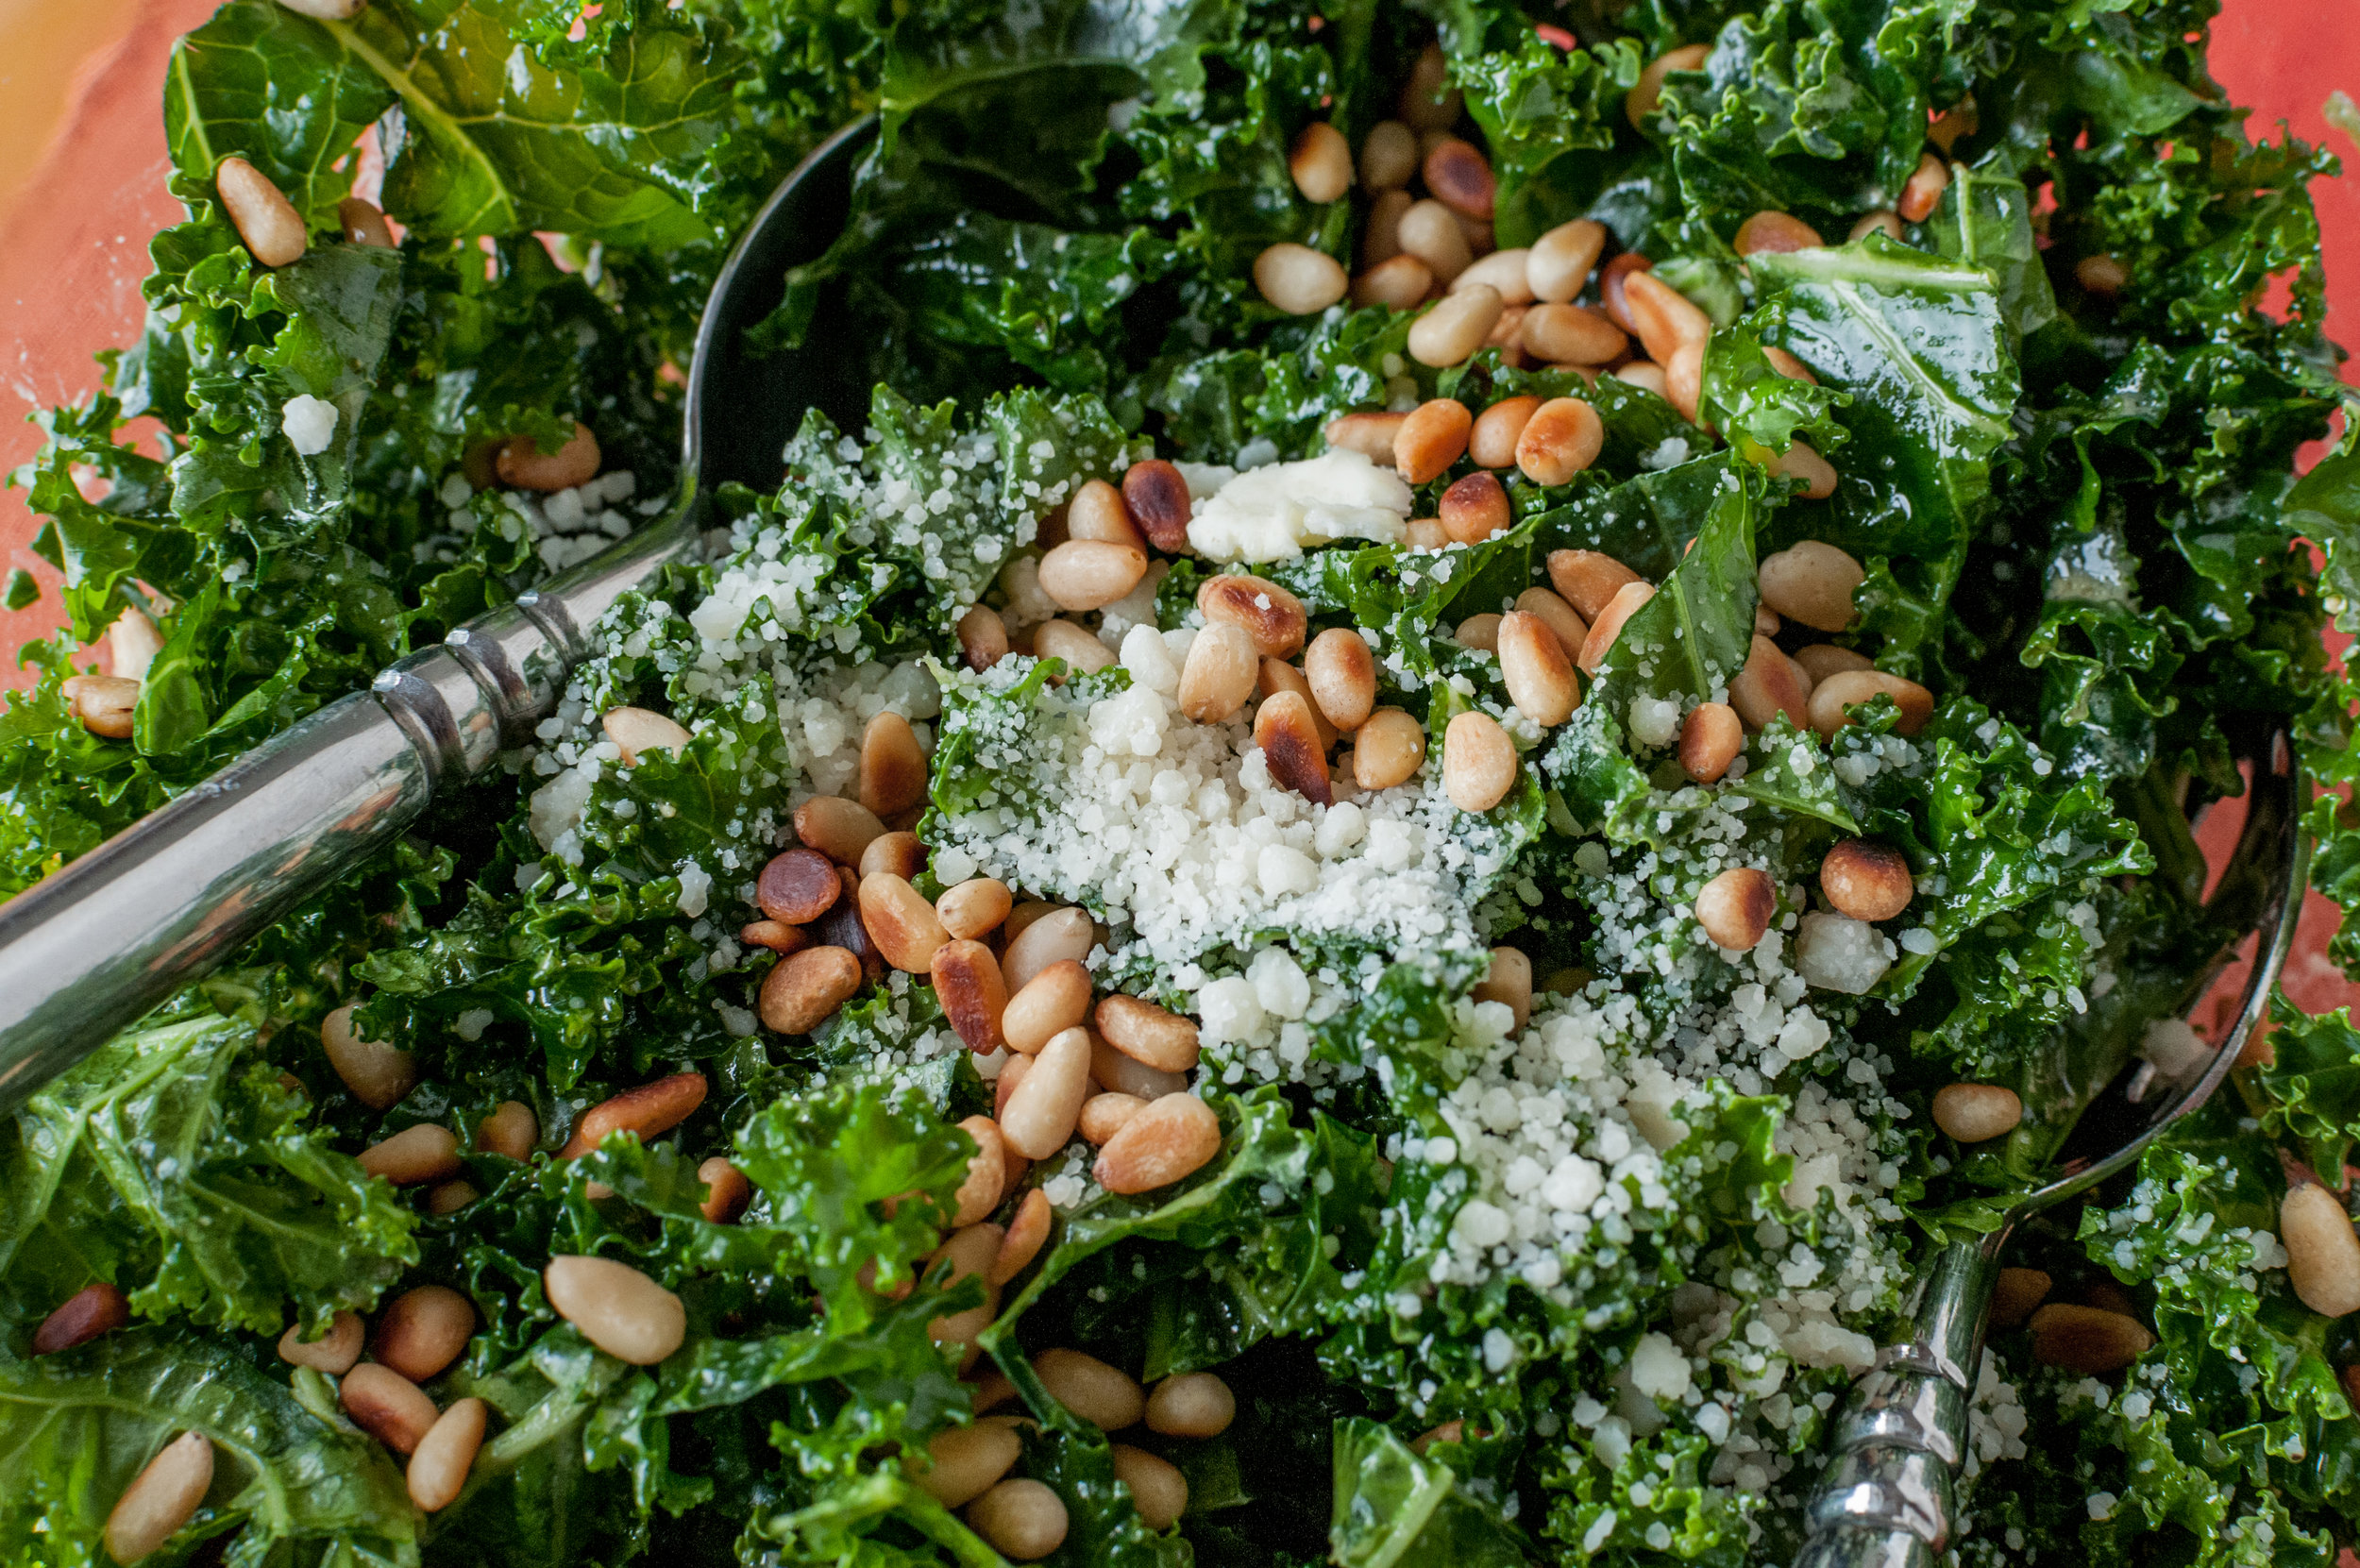 Kale salad with cannabis-infused dressing, pine nuts and pecorino cheese